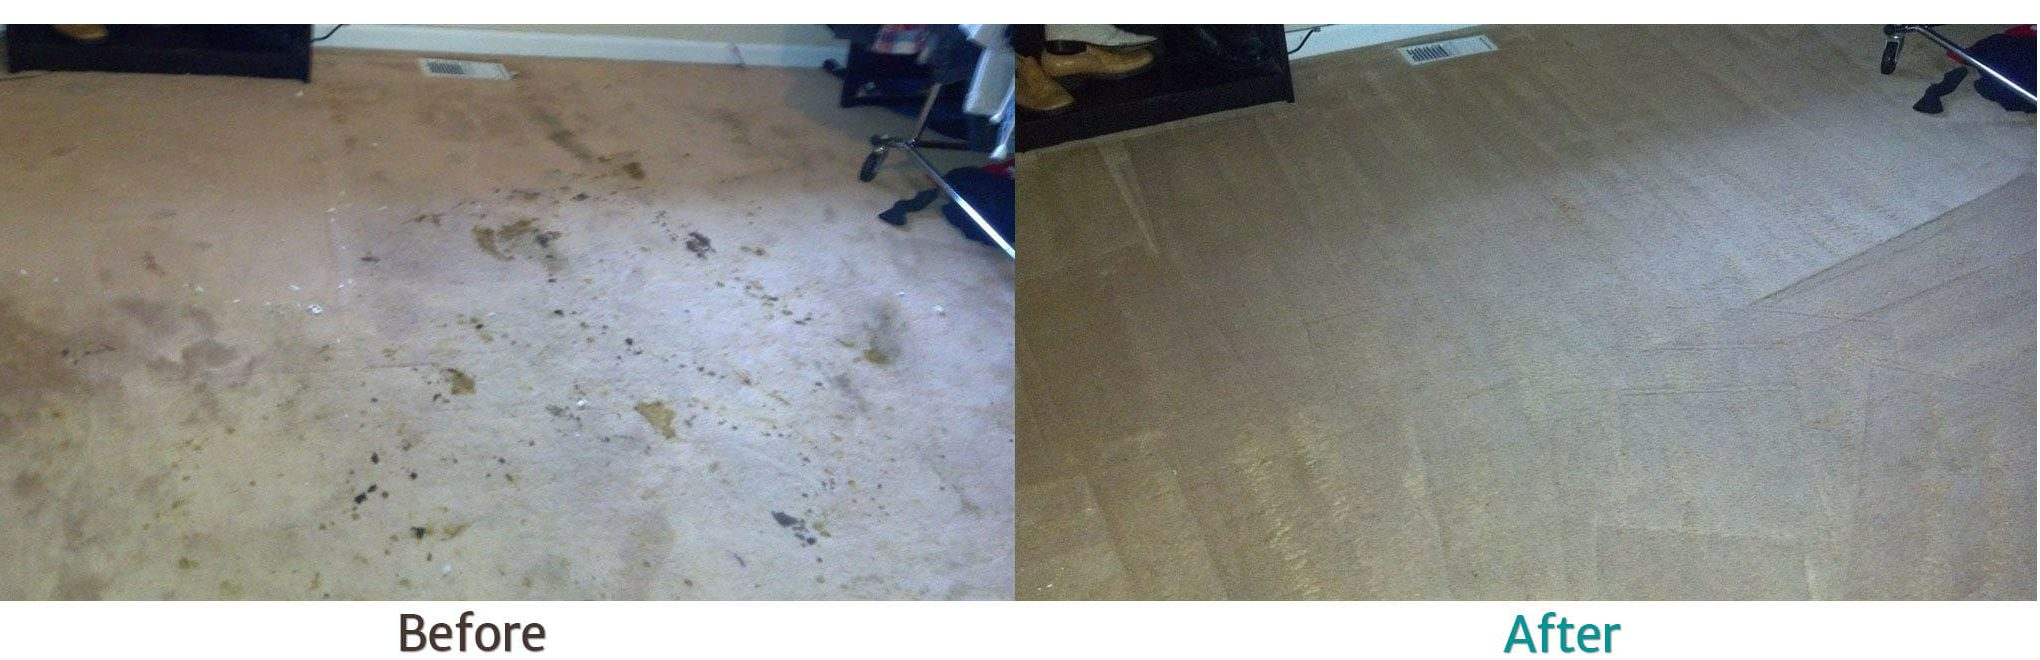 before and after carpet cleaning example